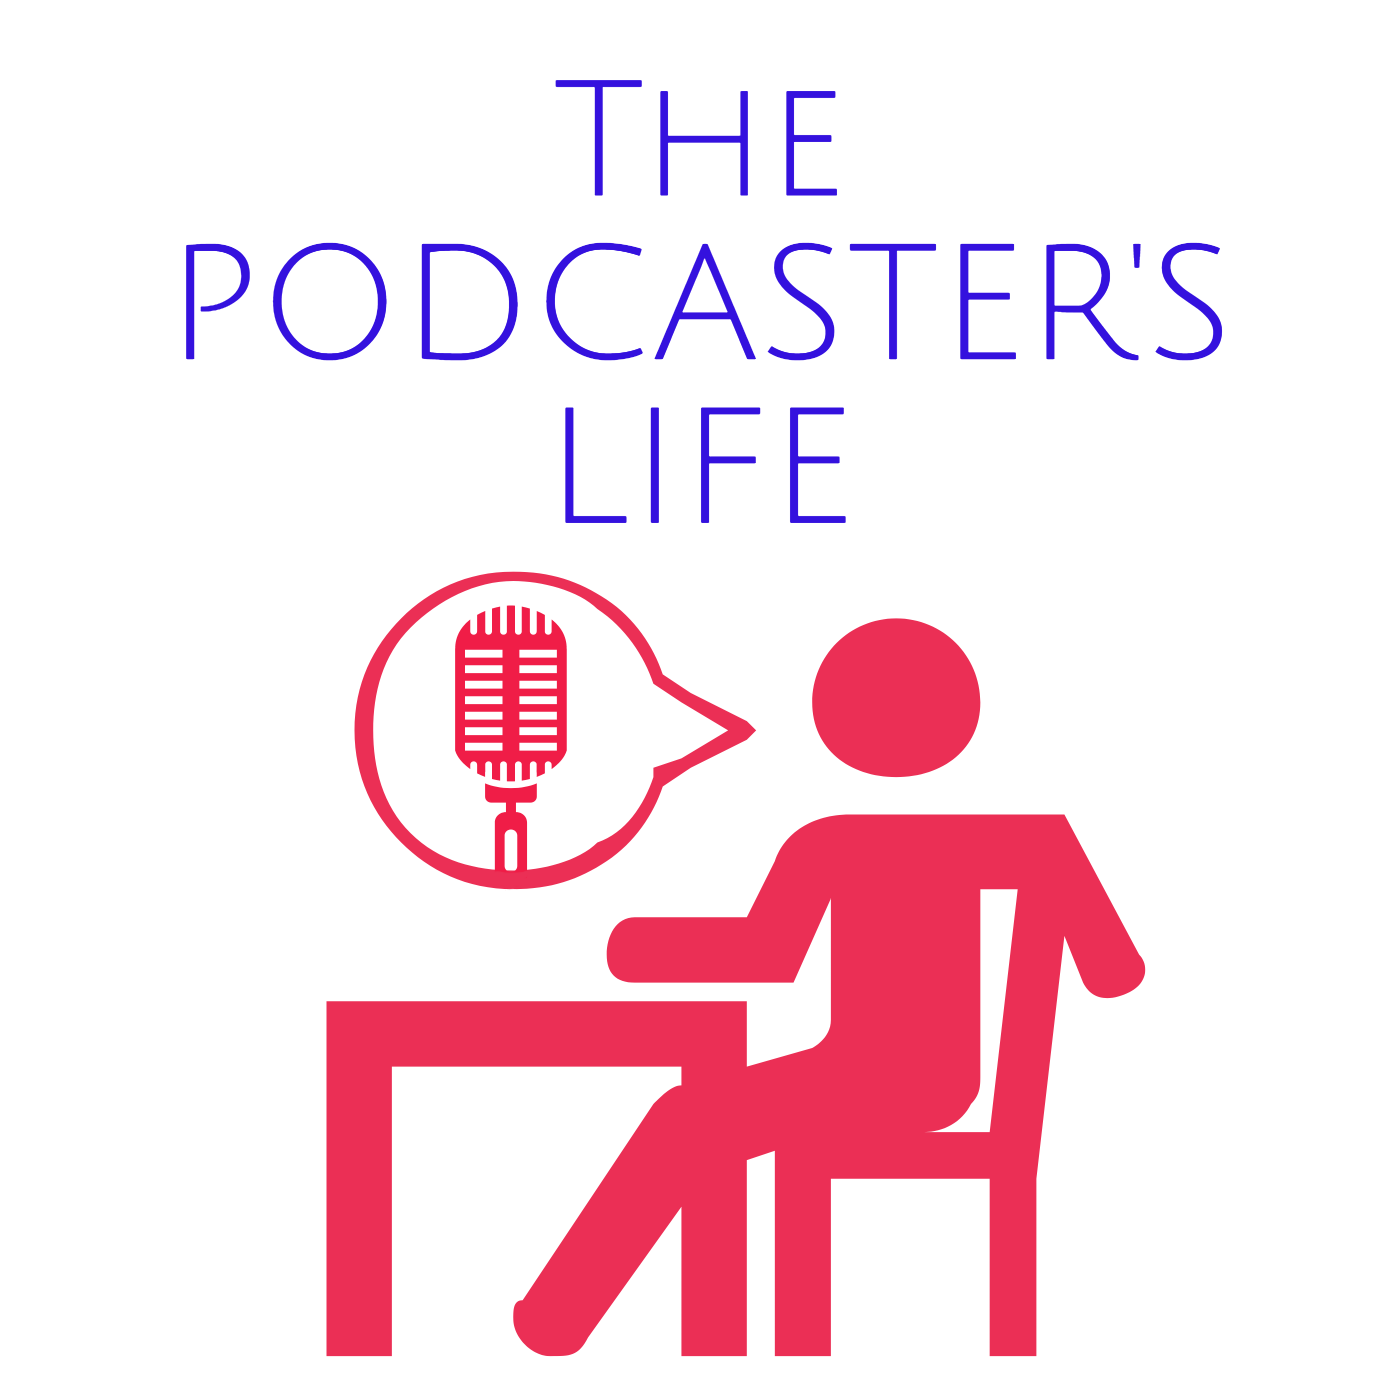 The Podcaster's Life w/ The Podcaster's Coach